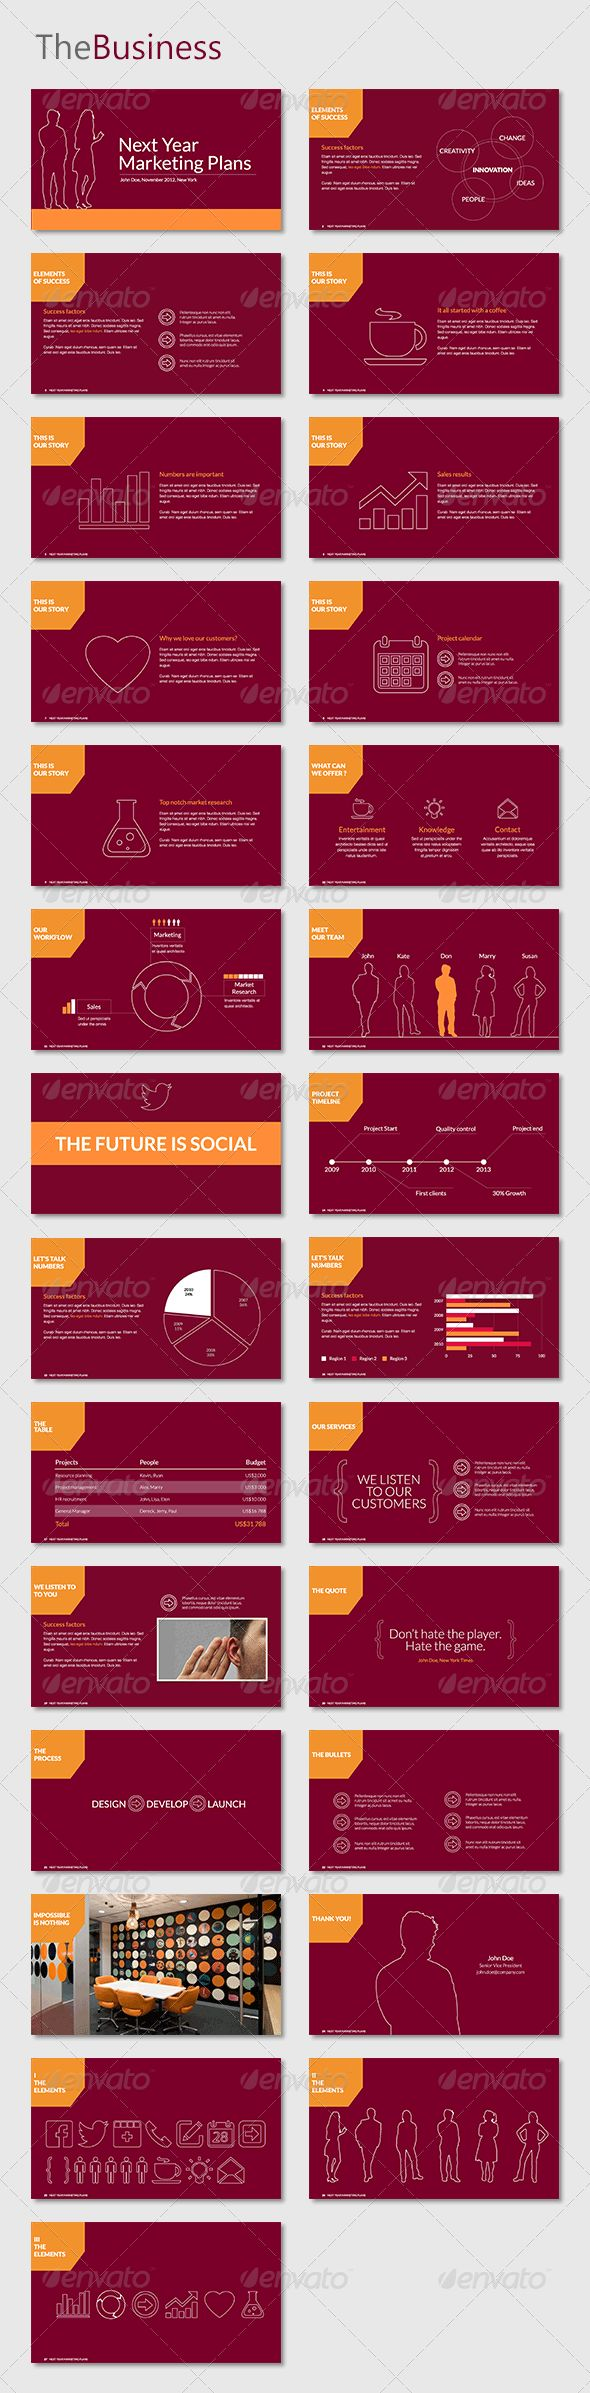 TheBusiness Keynote Template